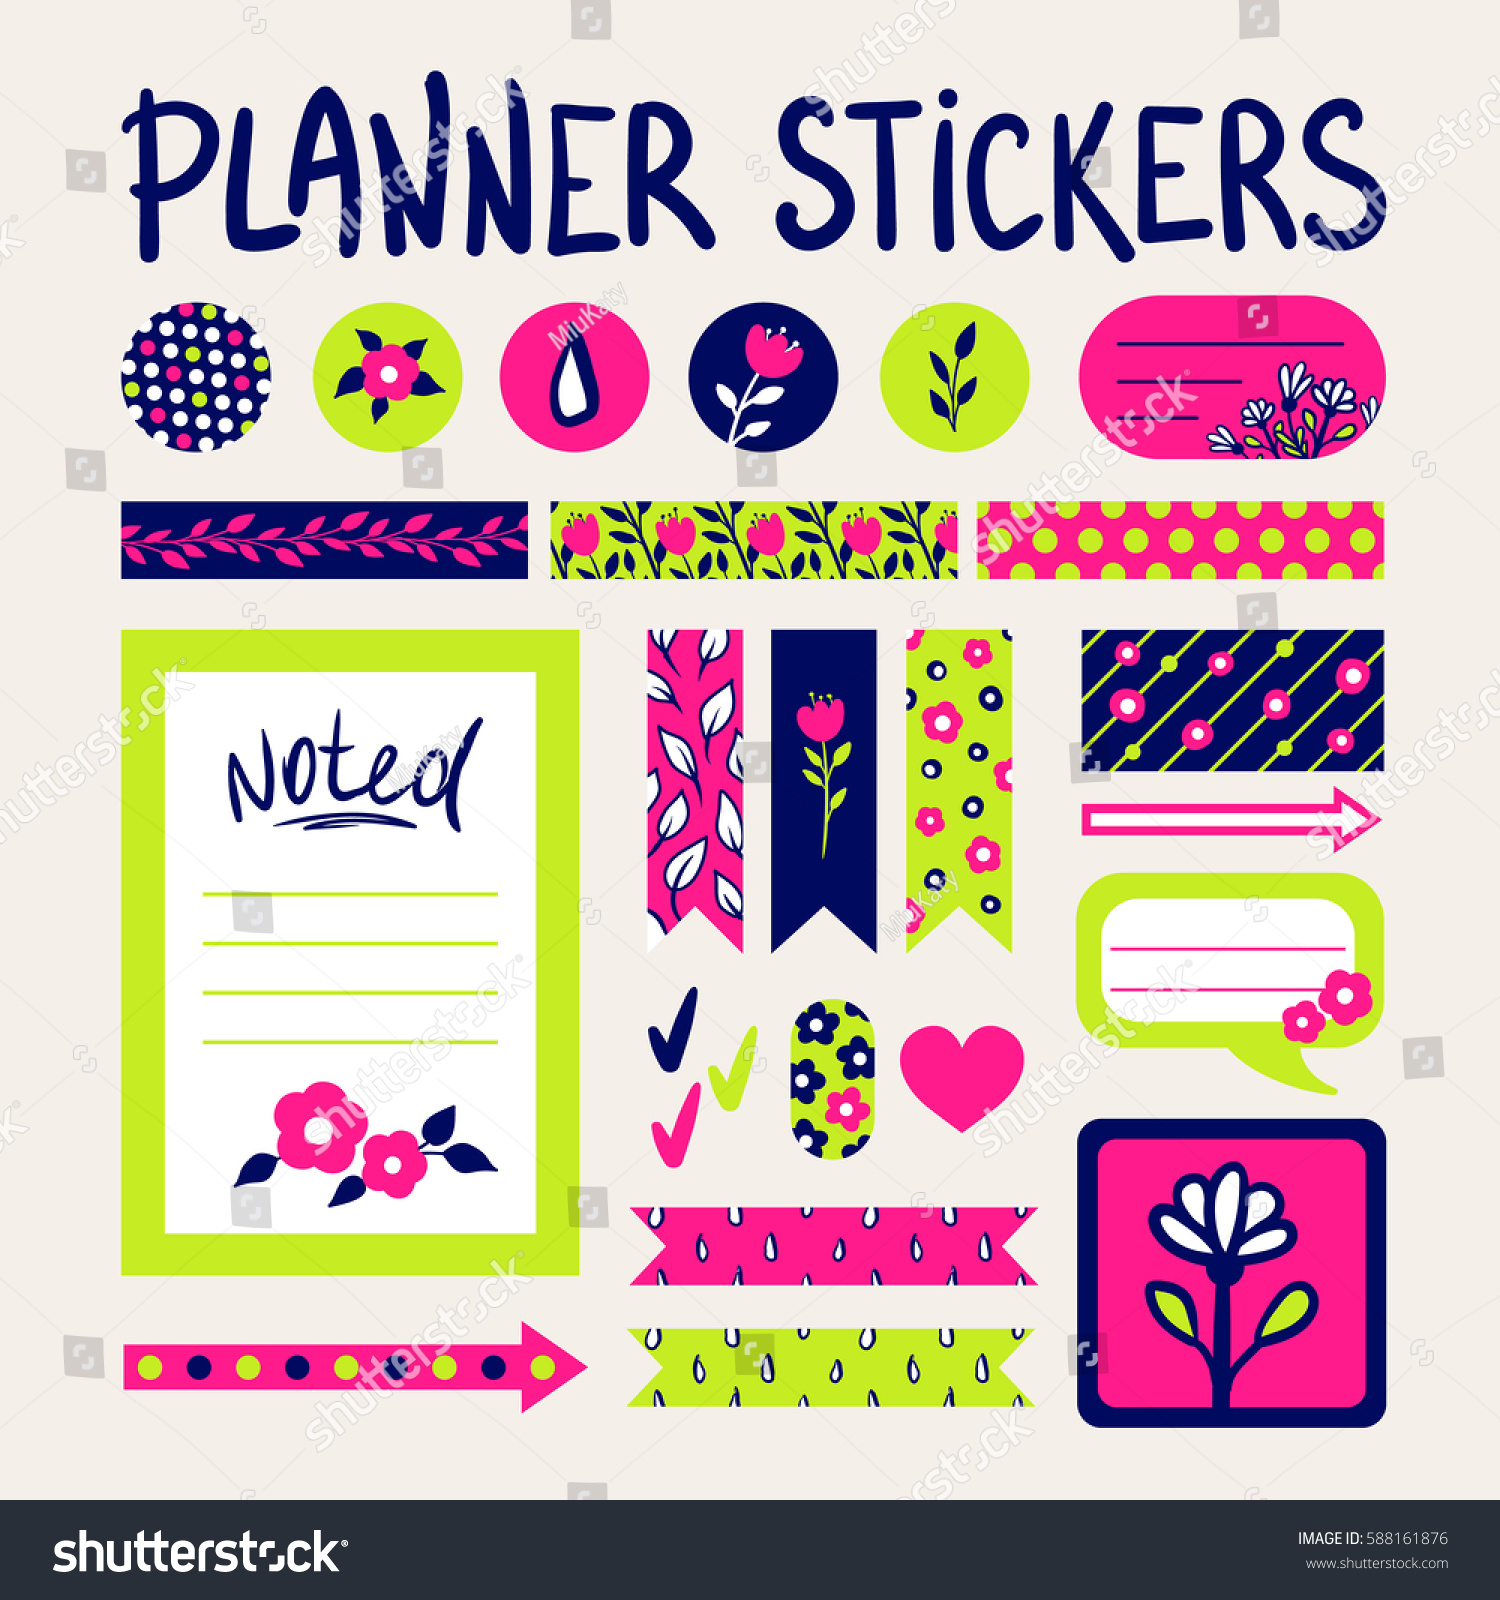 Cute signs symbols organized you planner stock vector 588161876 cute signs and symbols for organized you planner vector template with flowers and leaves patterns buycottarizona Images